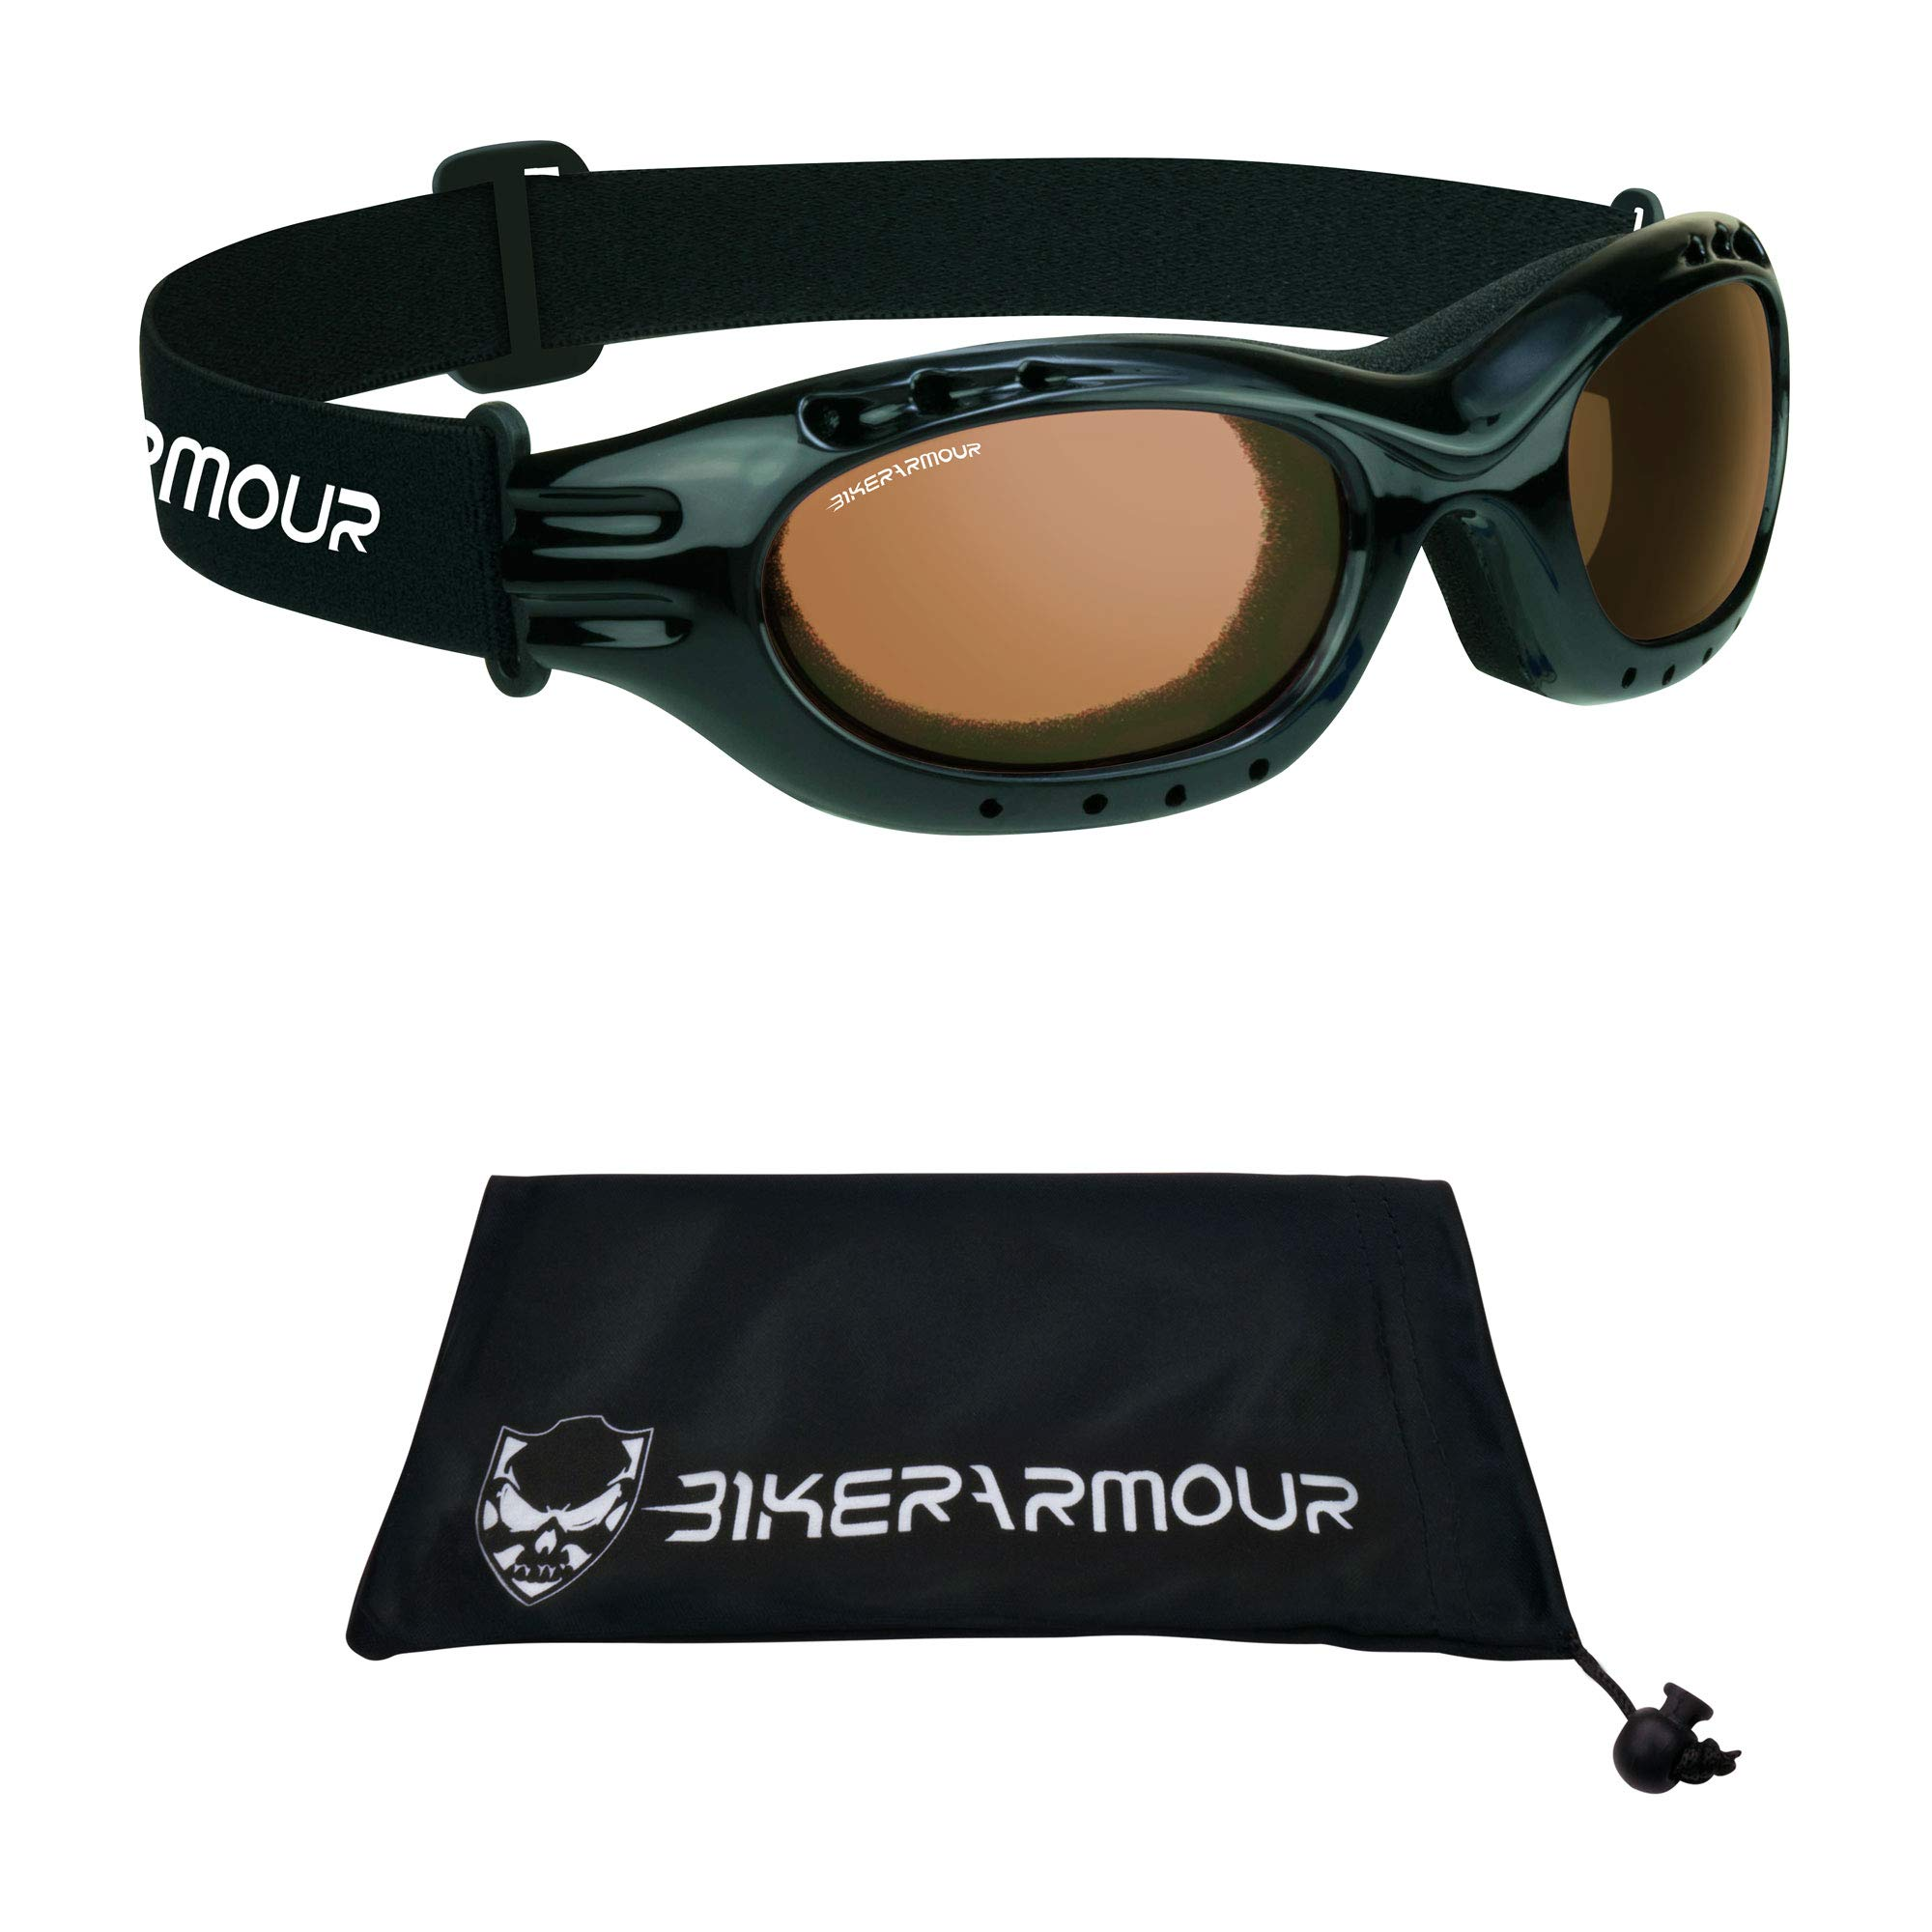 Motorcycle Goggles for Men and Women. Available From Smoke, Mirrored Blue, Mirrored Orange, Clear or Yellow Lenses. (Black HD)